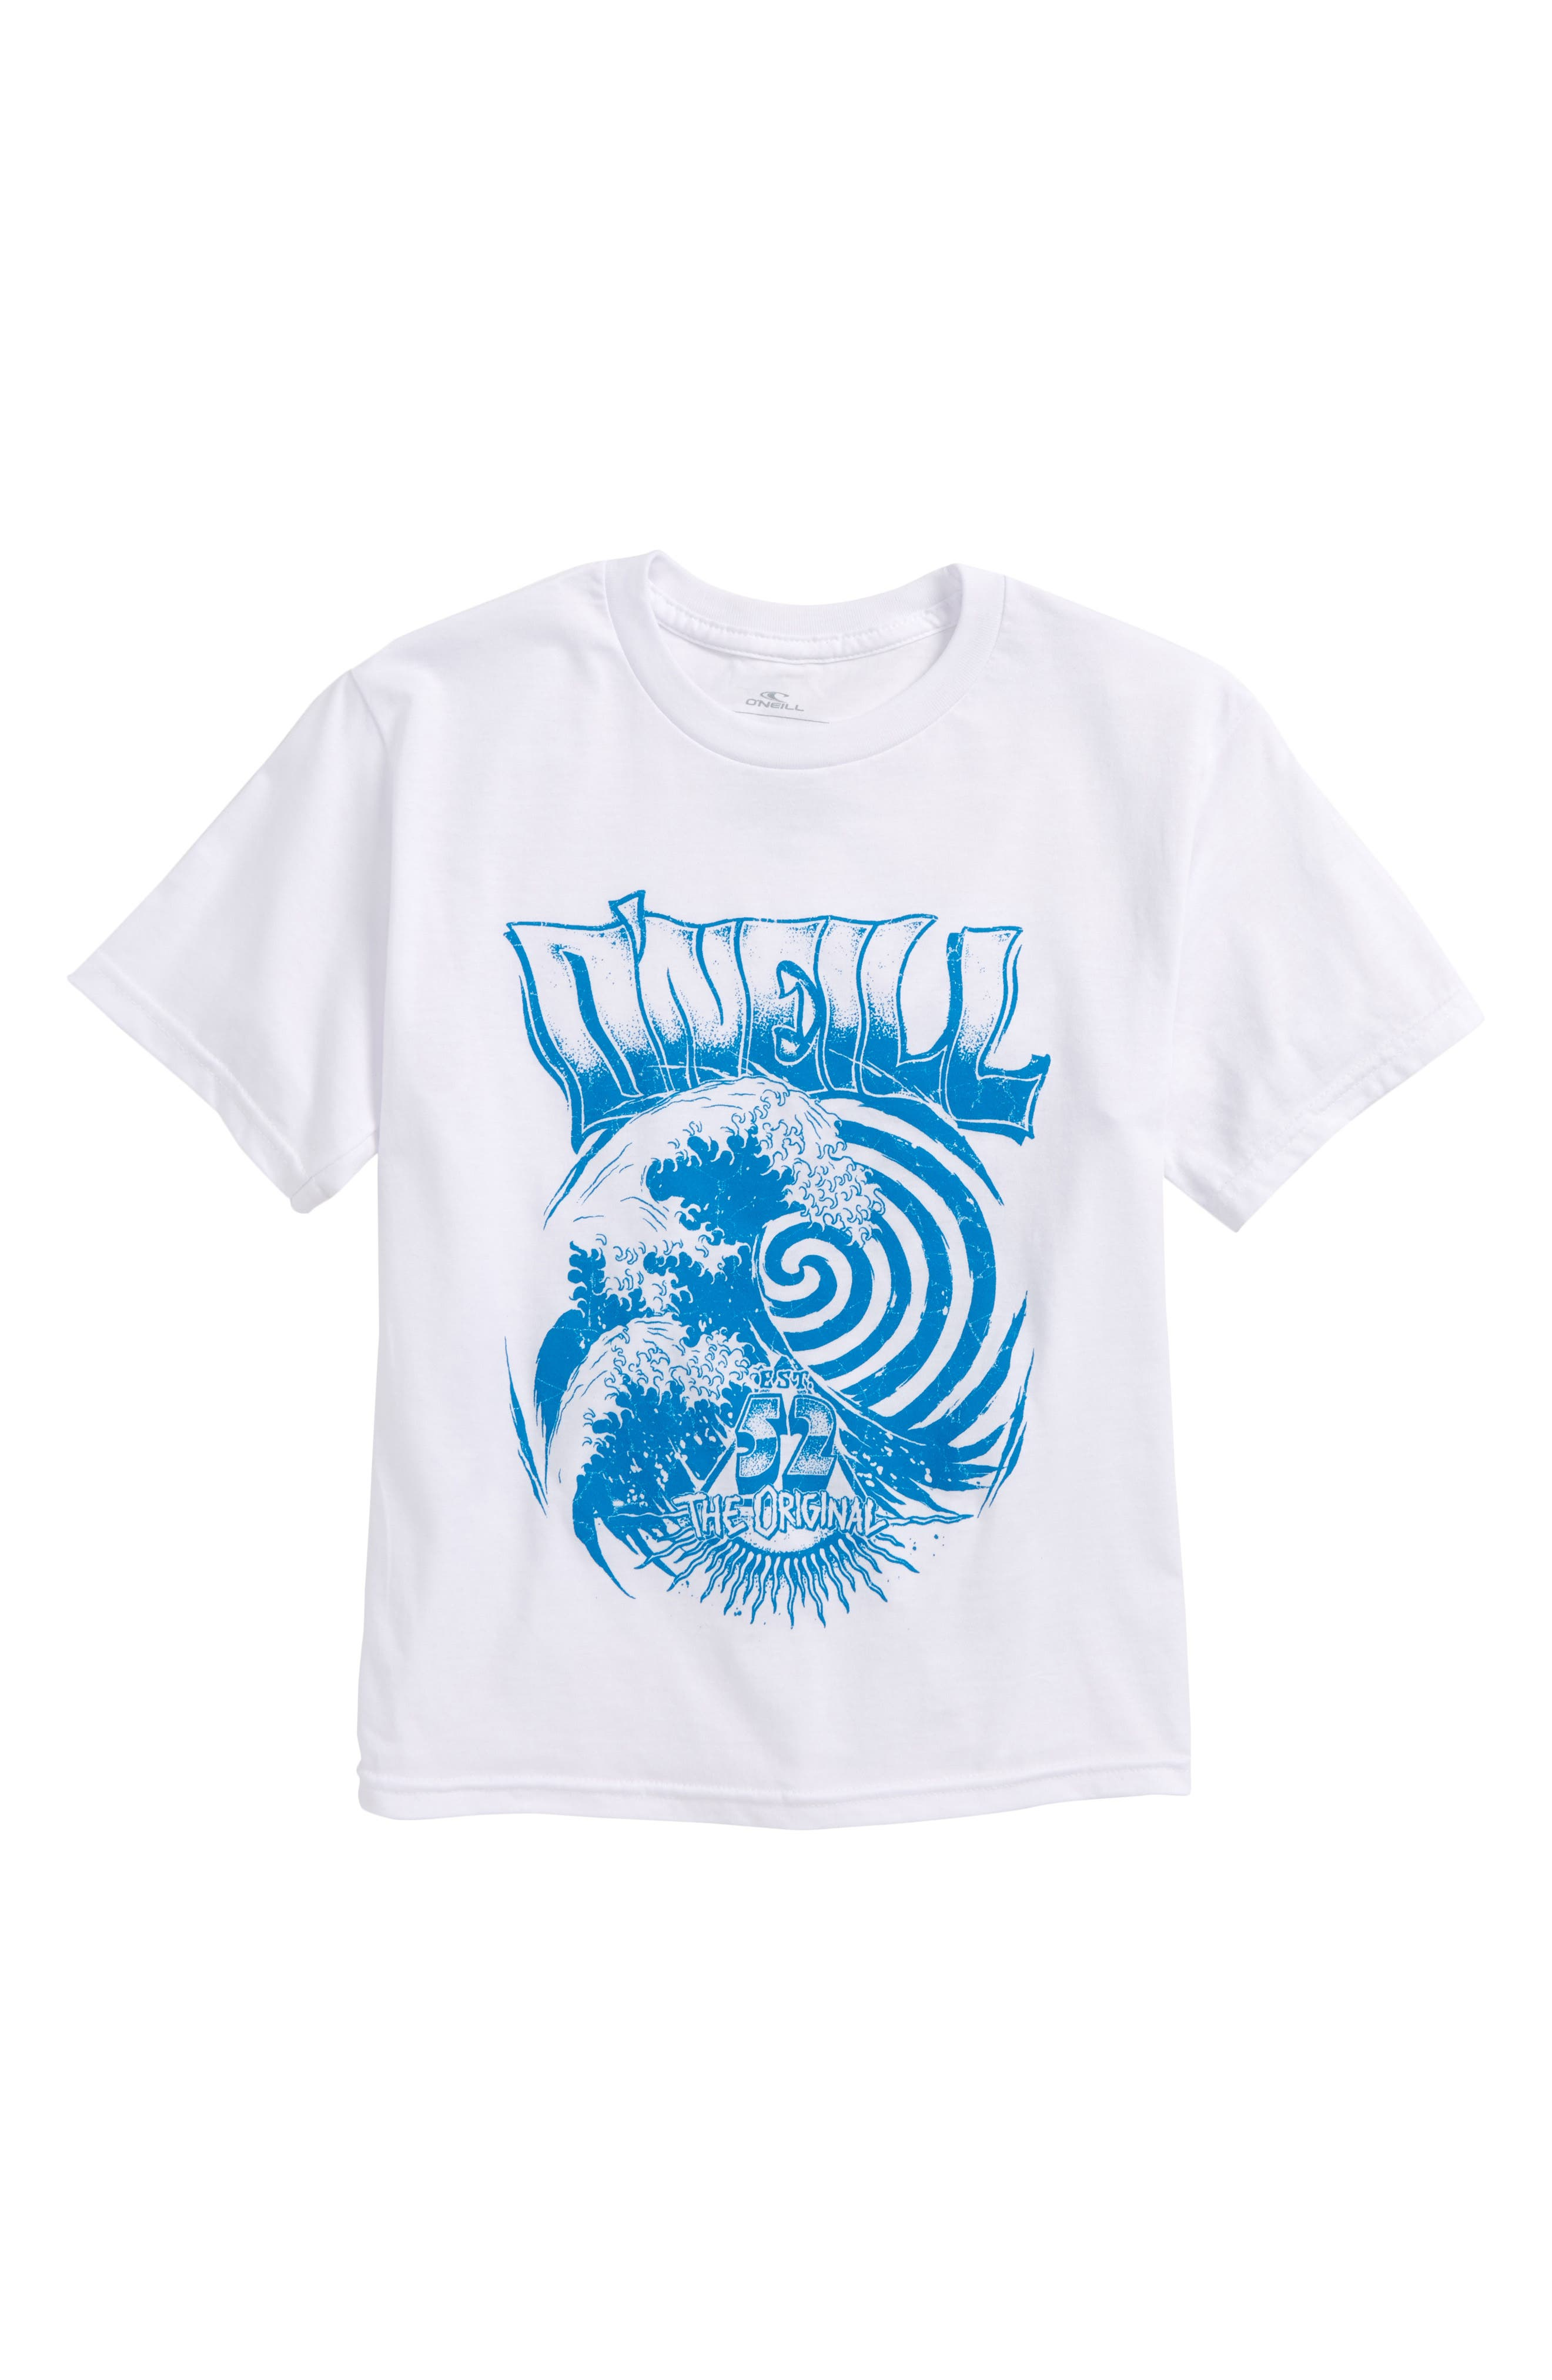 Zone T-Shirt,                         Main,                         color, White